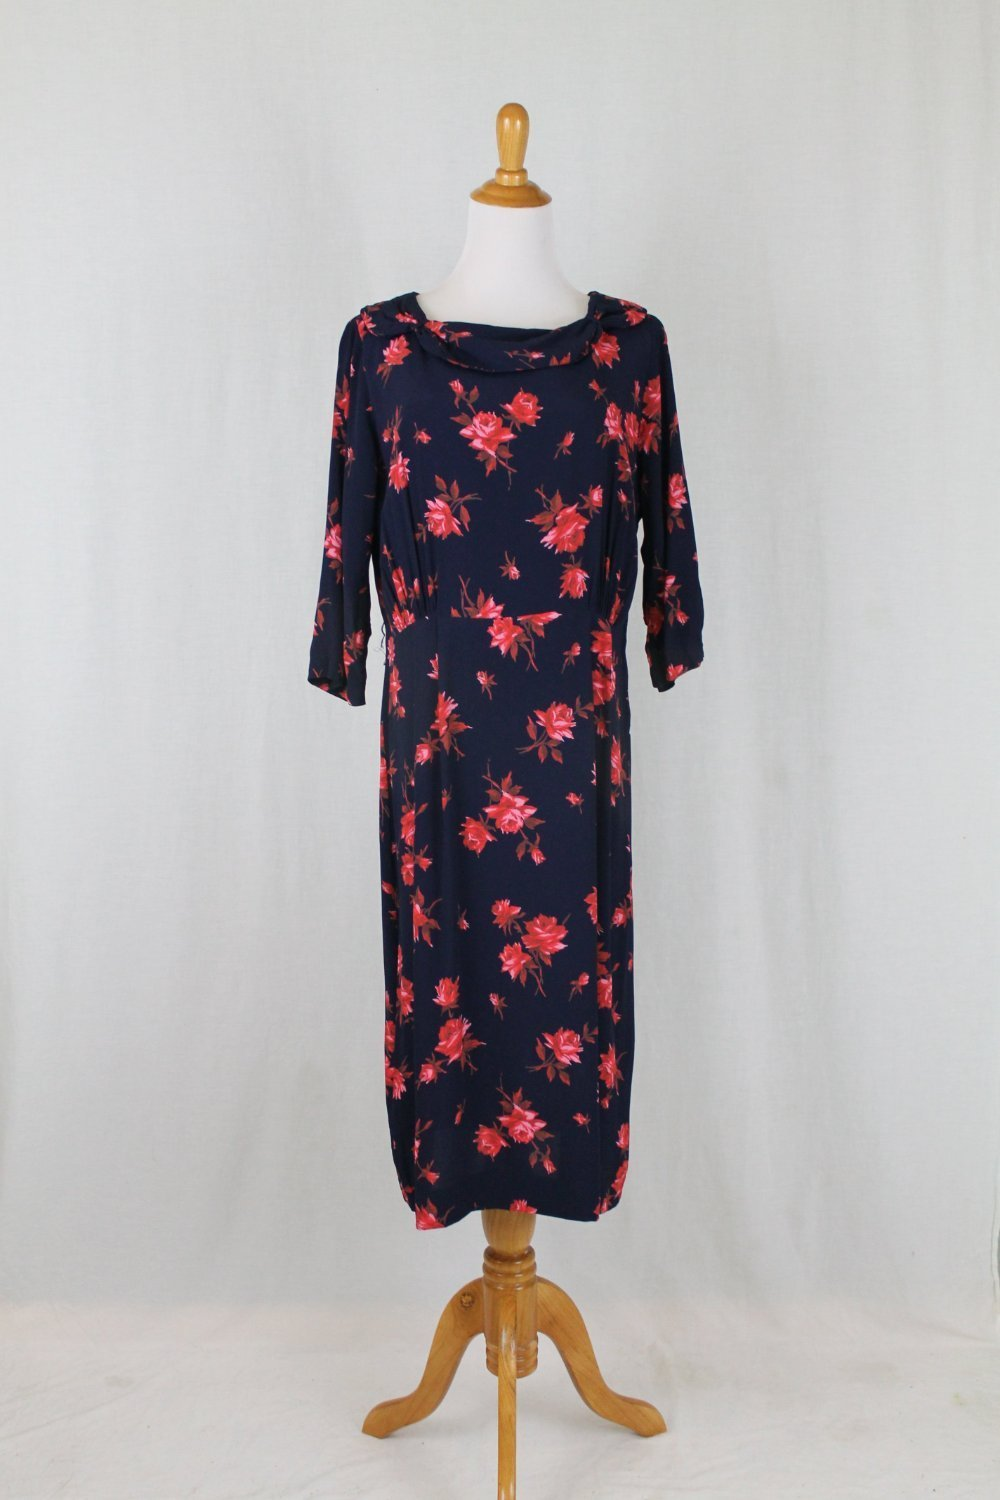 Vintage 1930's Rose Print Dress Navy Blue and Red Mint Condition Medium Large